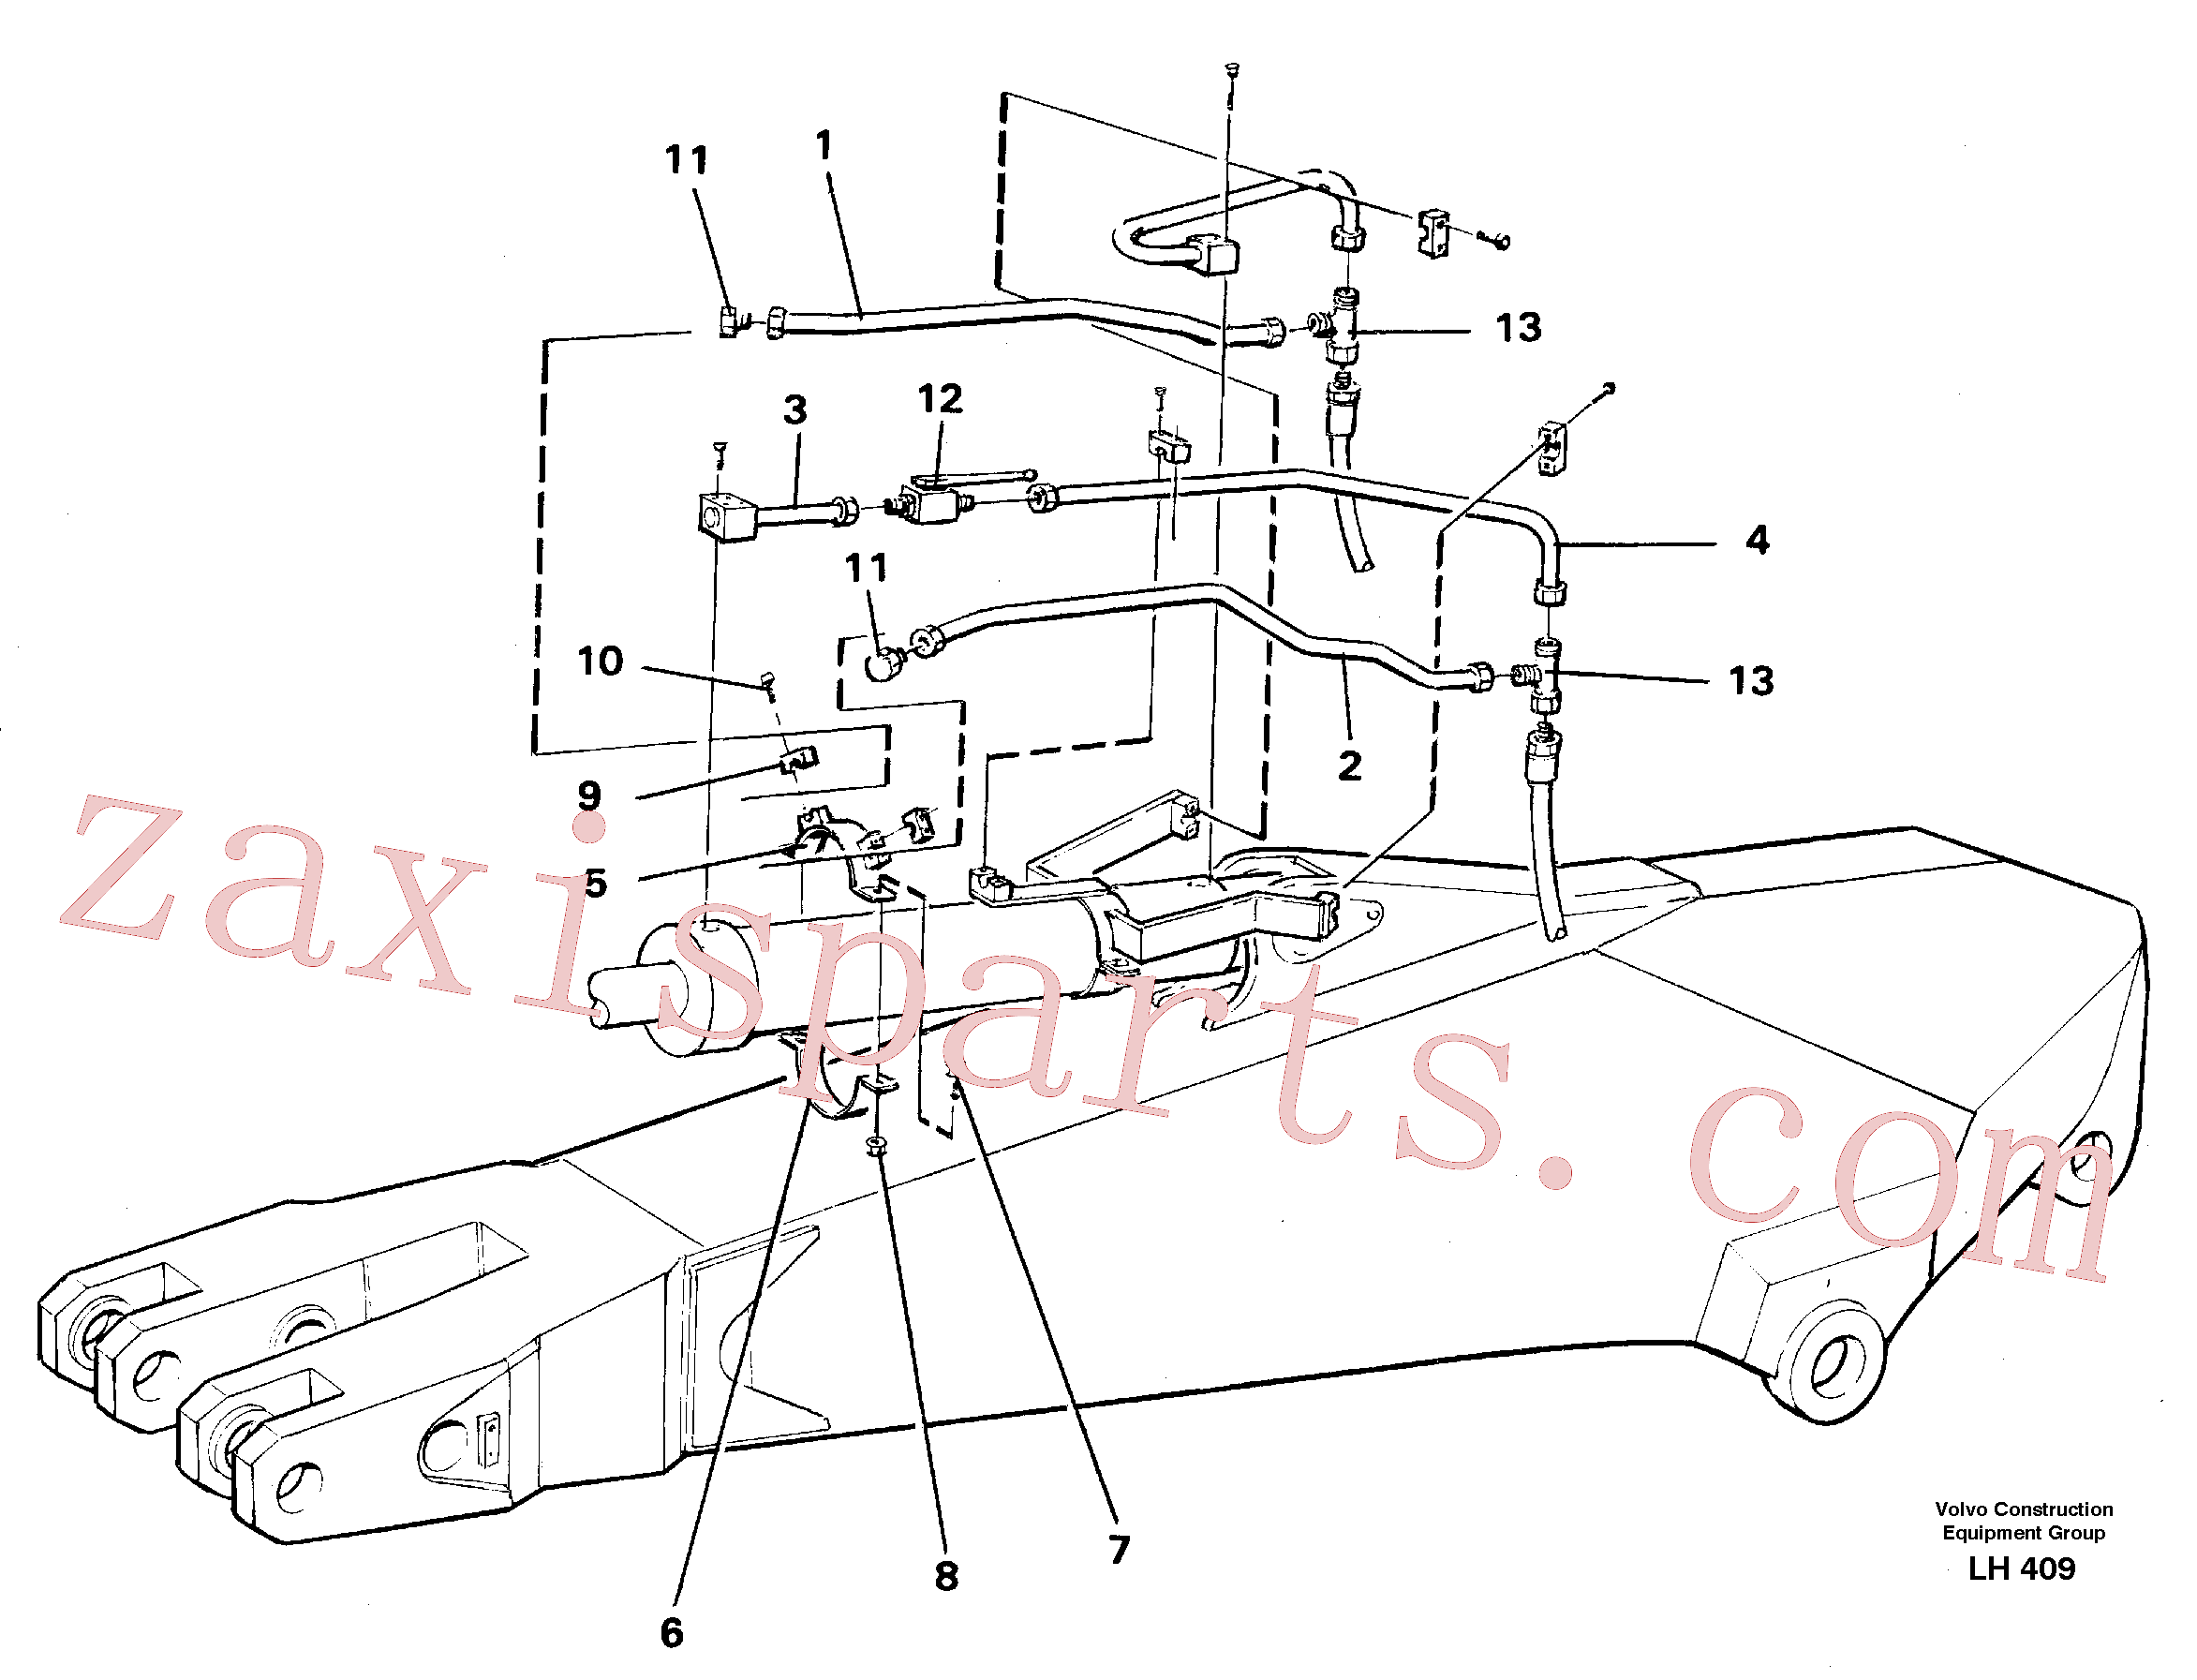 VOE14249977 for Volvo Parallel connected grab hydraulics on dipper arm(LH409 assembly)